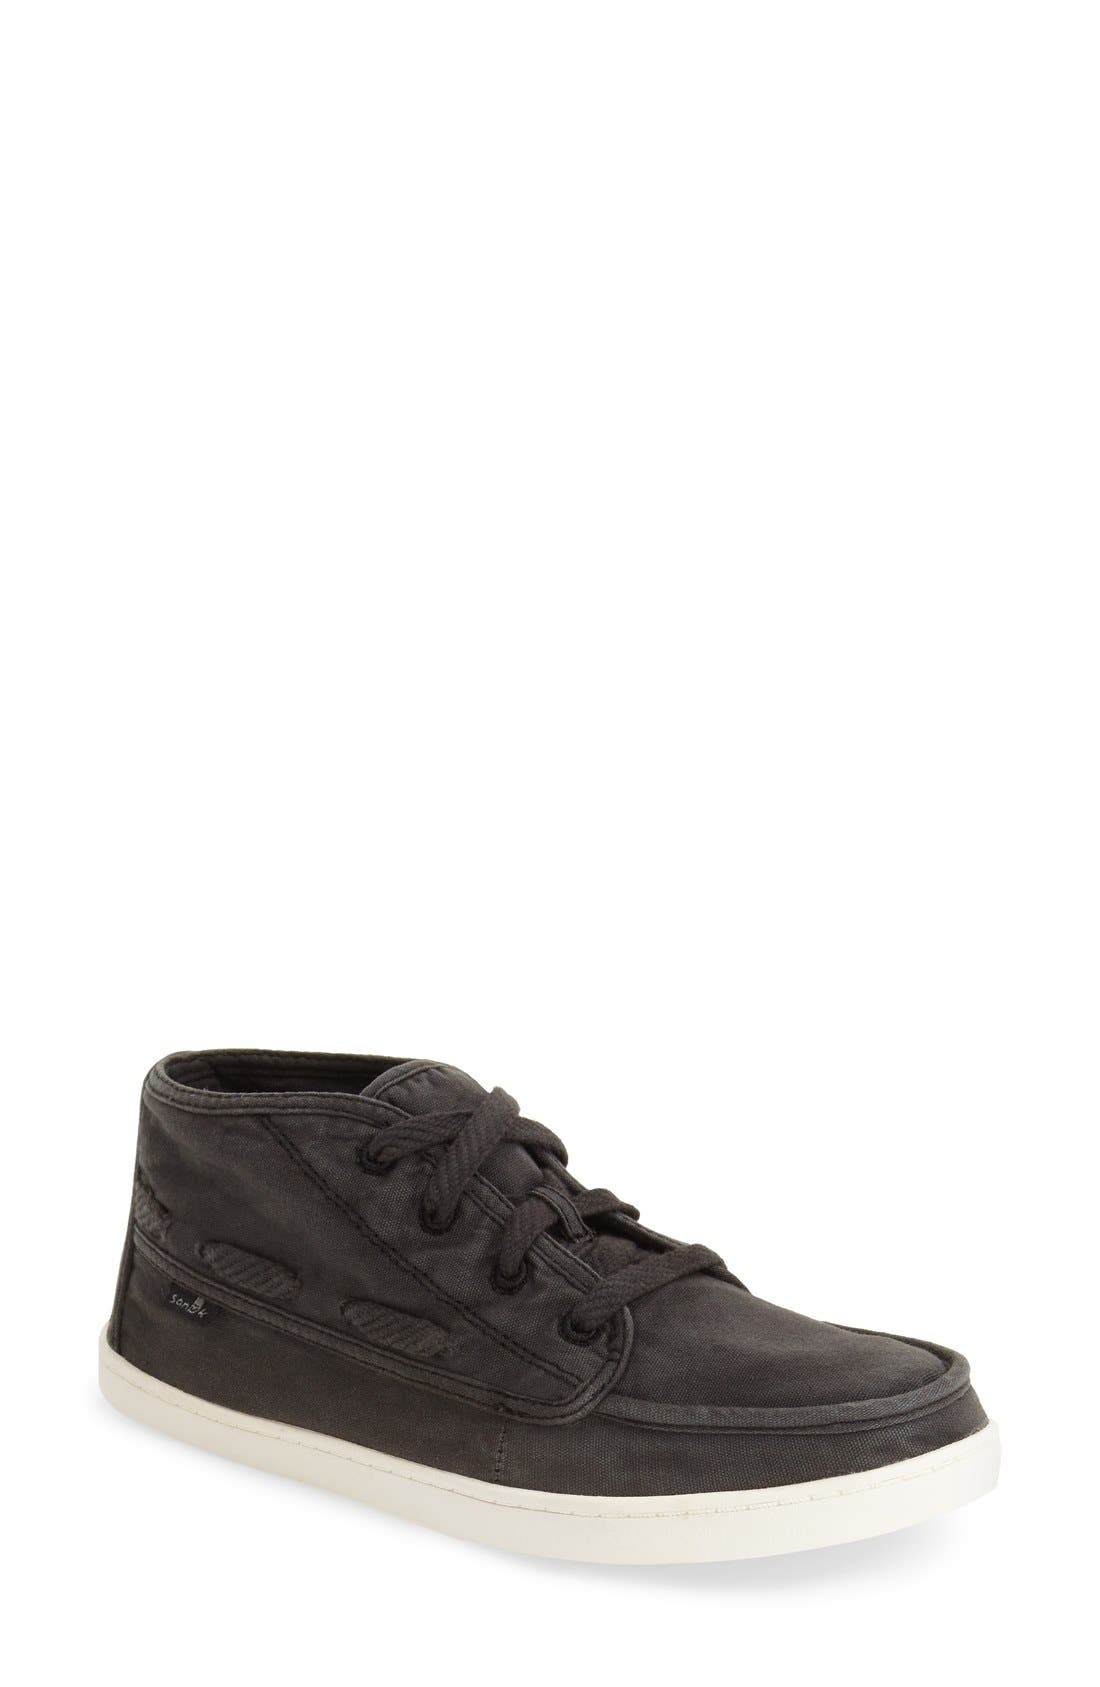 Sanuk 'Vee K Shawn' High Top Sneaker (Women)